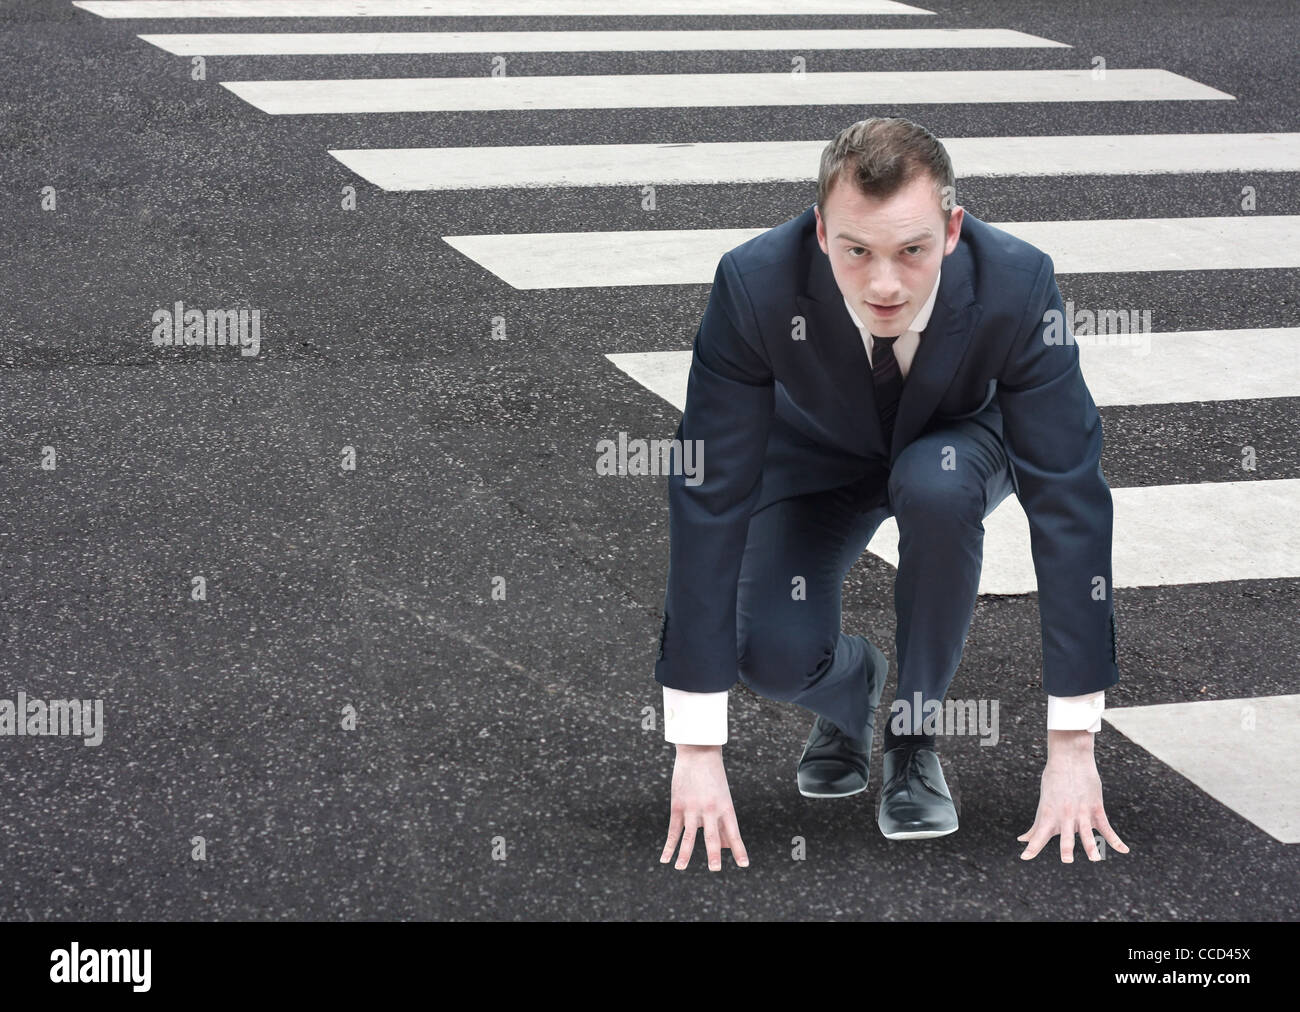 Competitive businessman - Stock Image